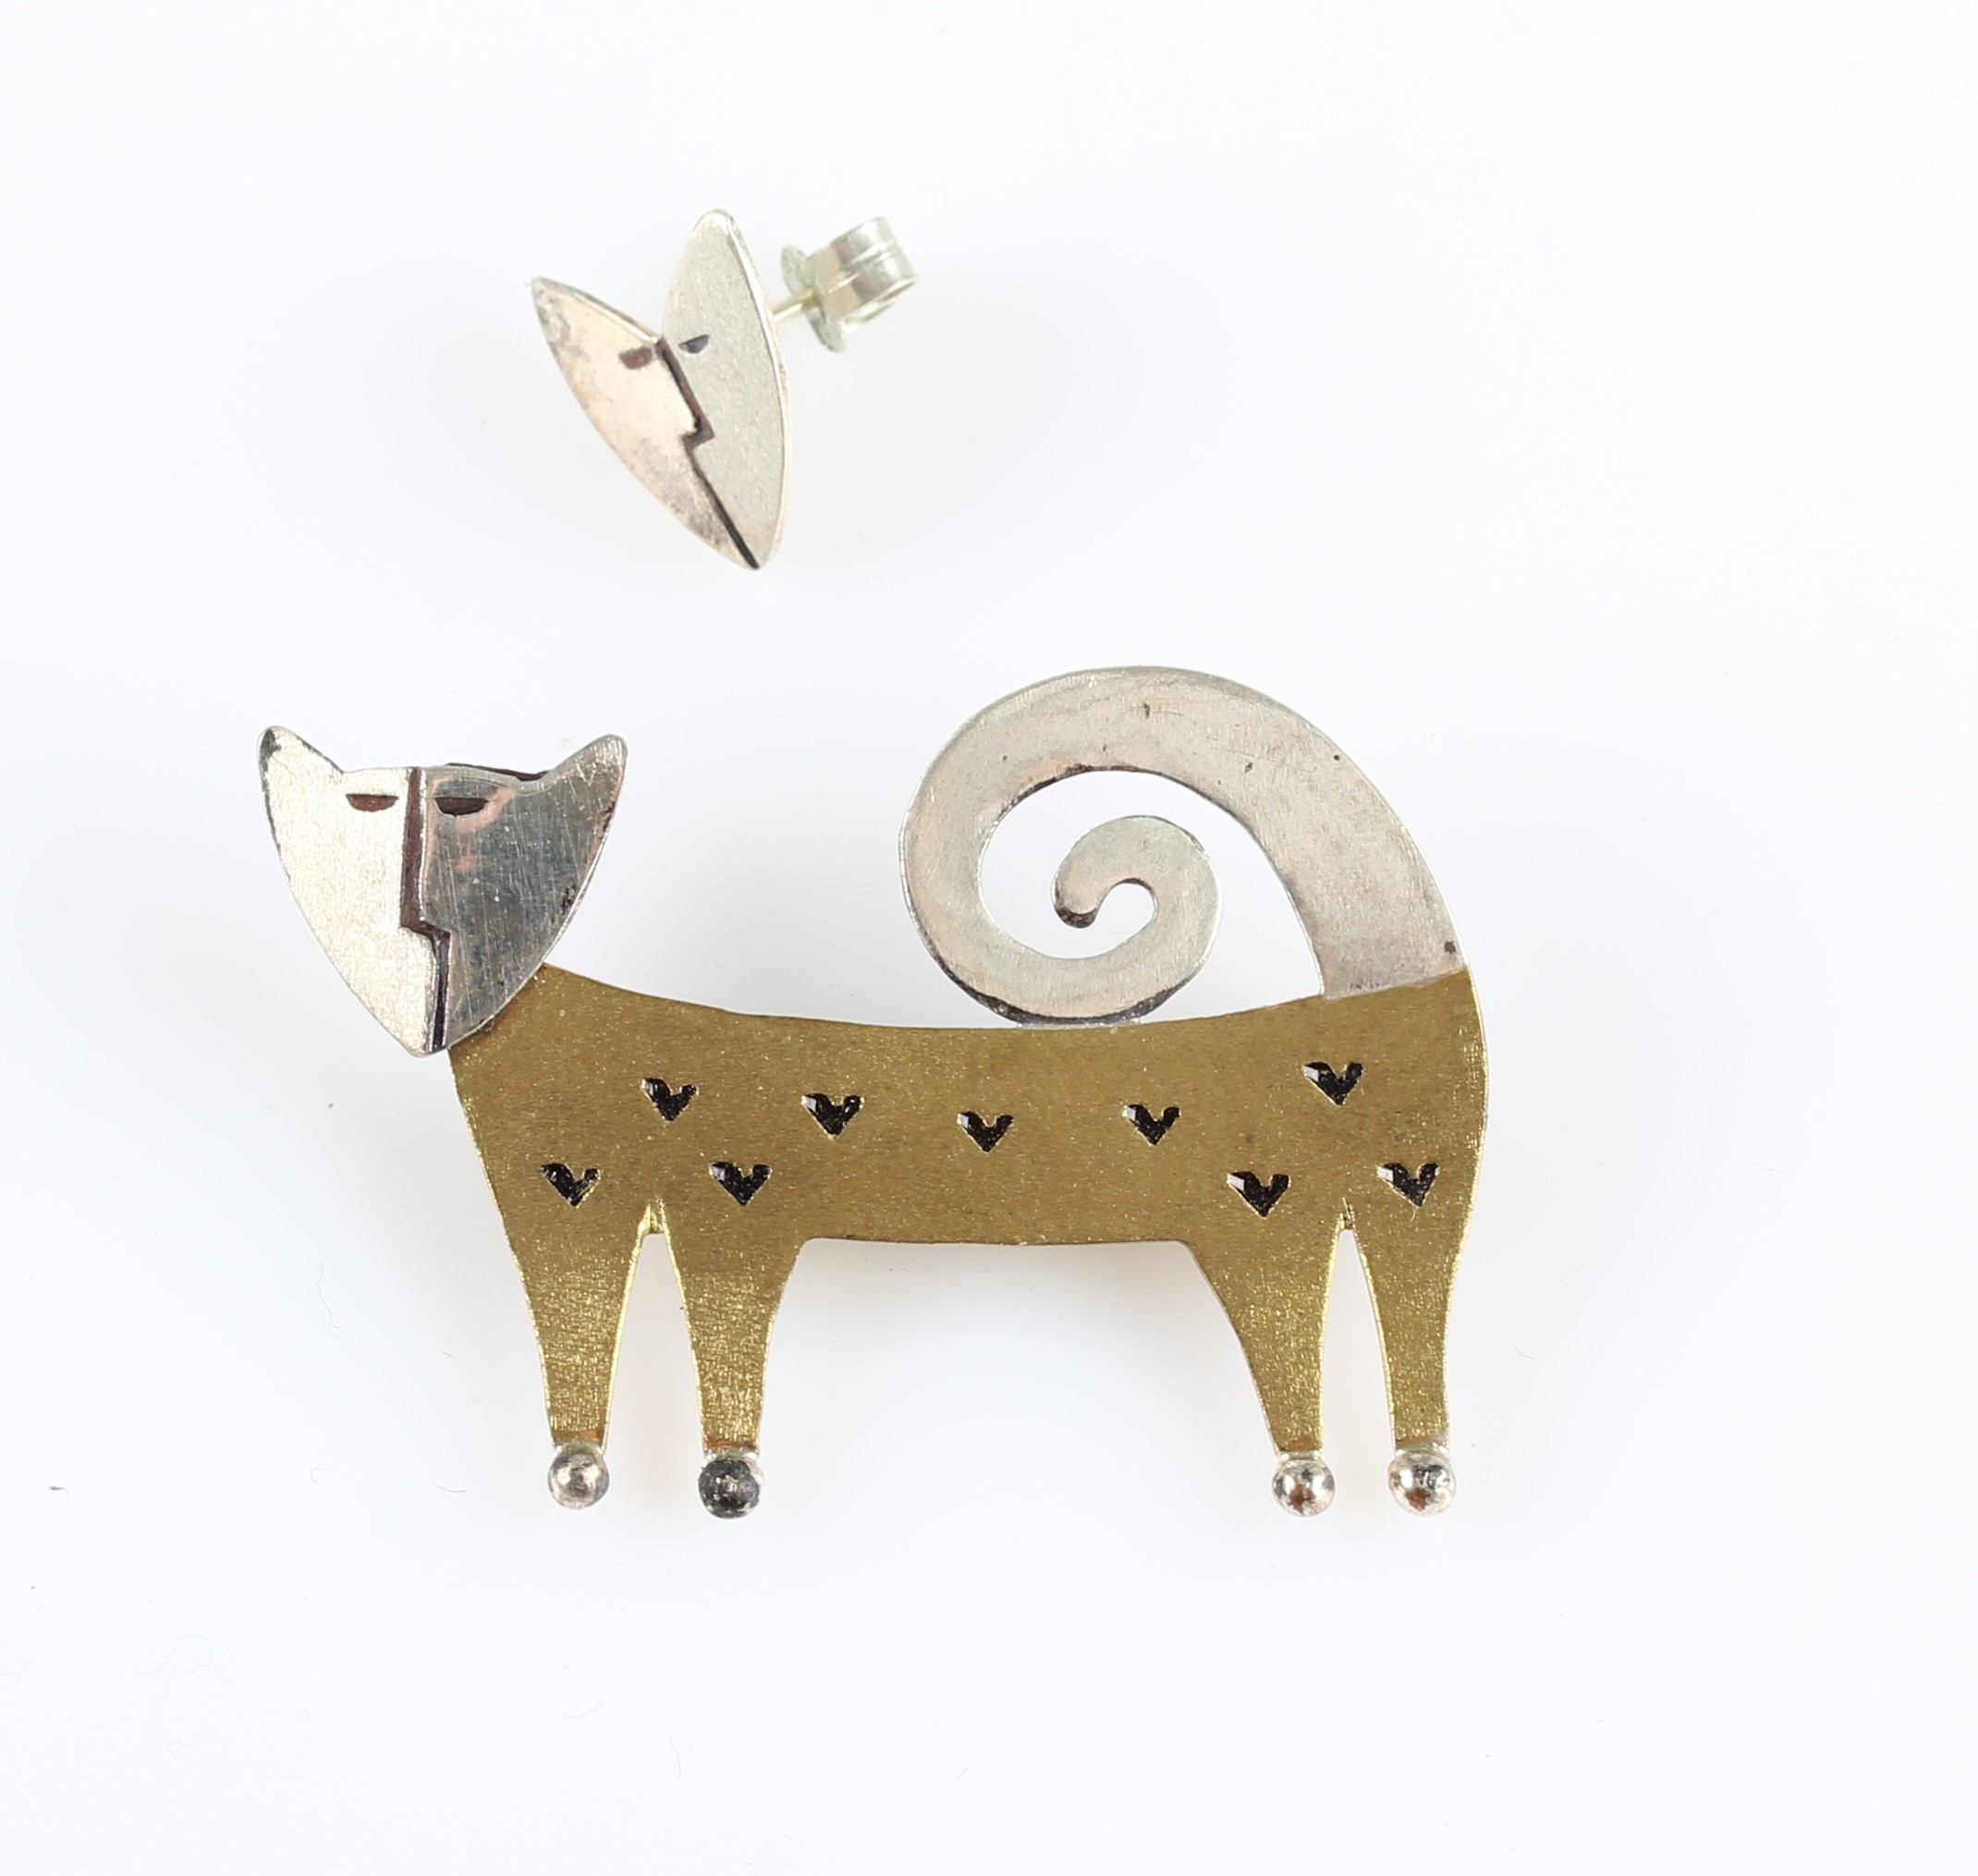 Lot 11 - A novelty cat brooch, unmarked metal, together with a matching design single earring, stamped